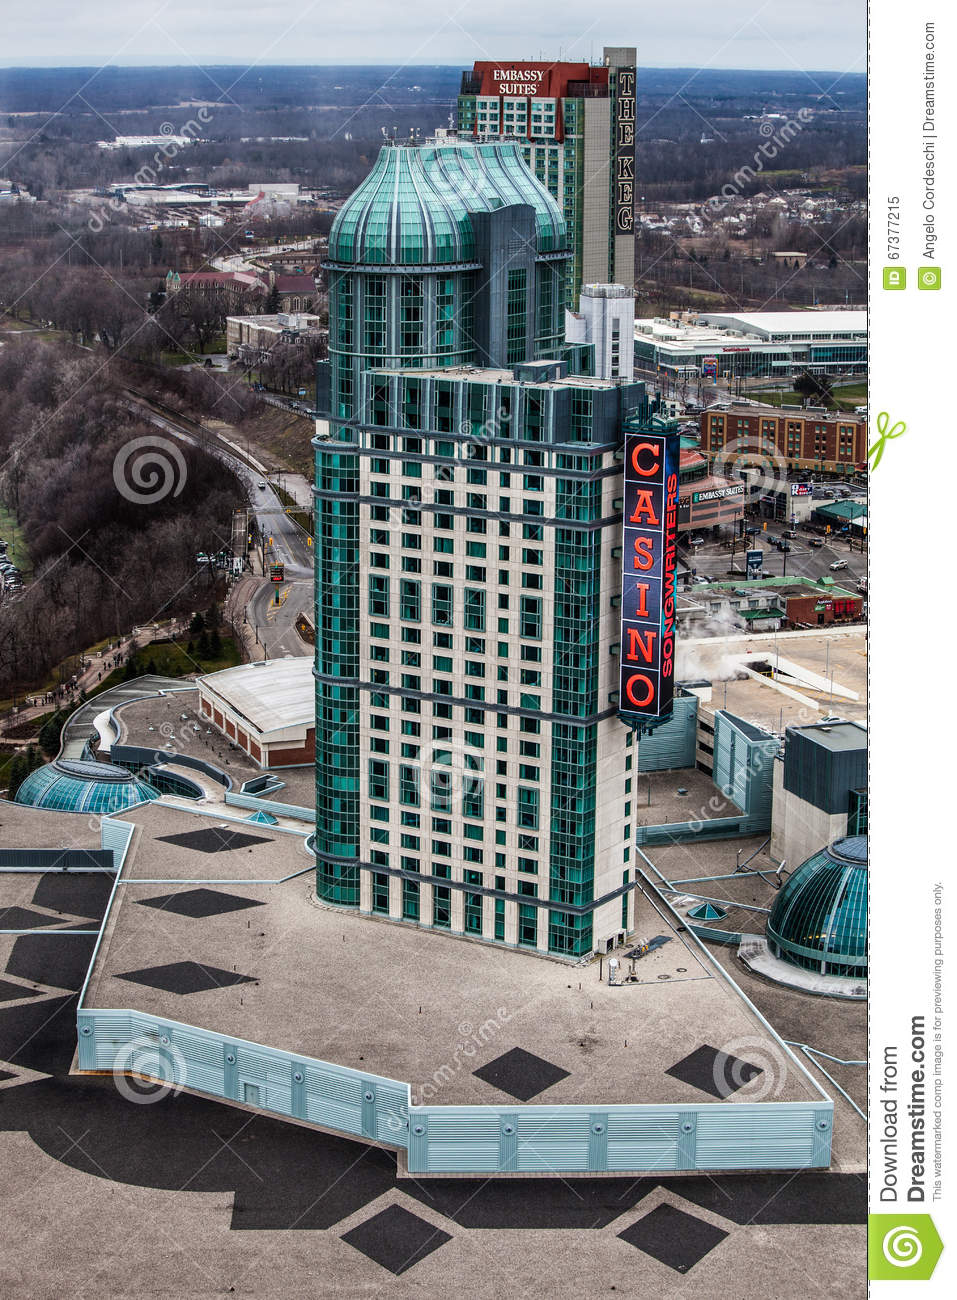 niagara helicopter price with Editorial Image Casino Palace Keg Embassy Suites Niagara Falls Aerial View Building Lighted Sign Canada Viewed Above Image67377215 on The Art Of Estate Living 1413462 furthermore Grand Canyon National Park Arizona furthermore D773 6483P5 furthermore Canadian City Breaks also Noob tube tee shirts 235303621474081552.